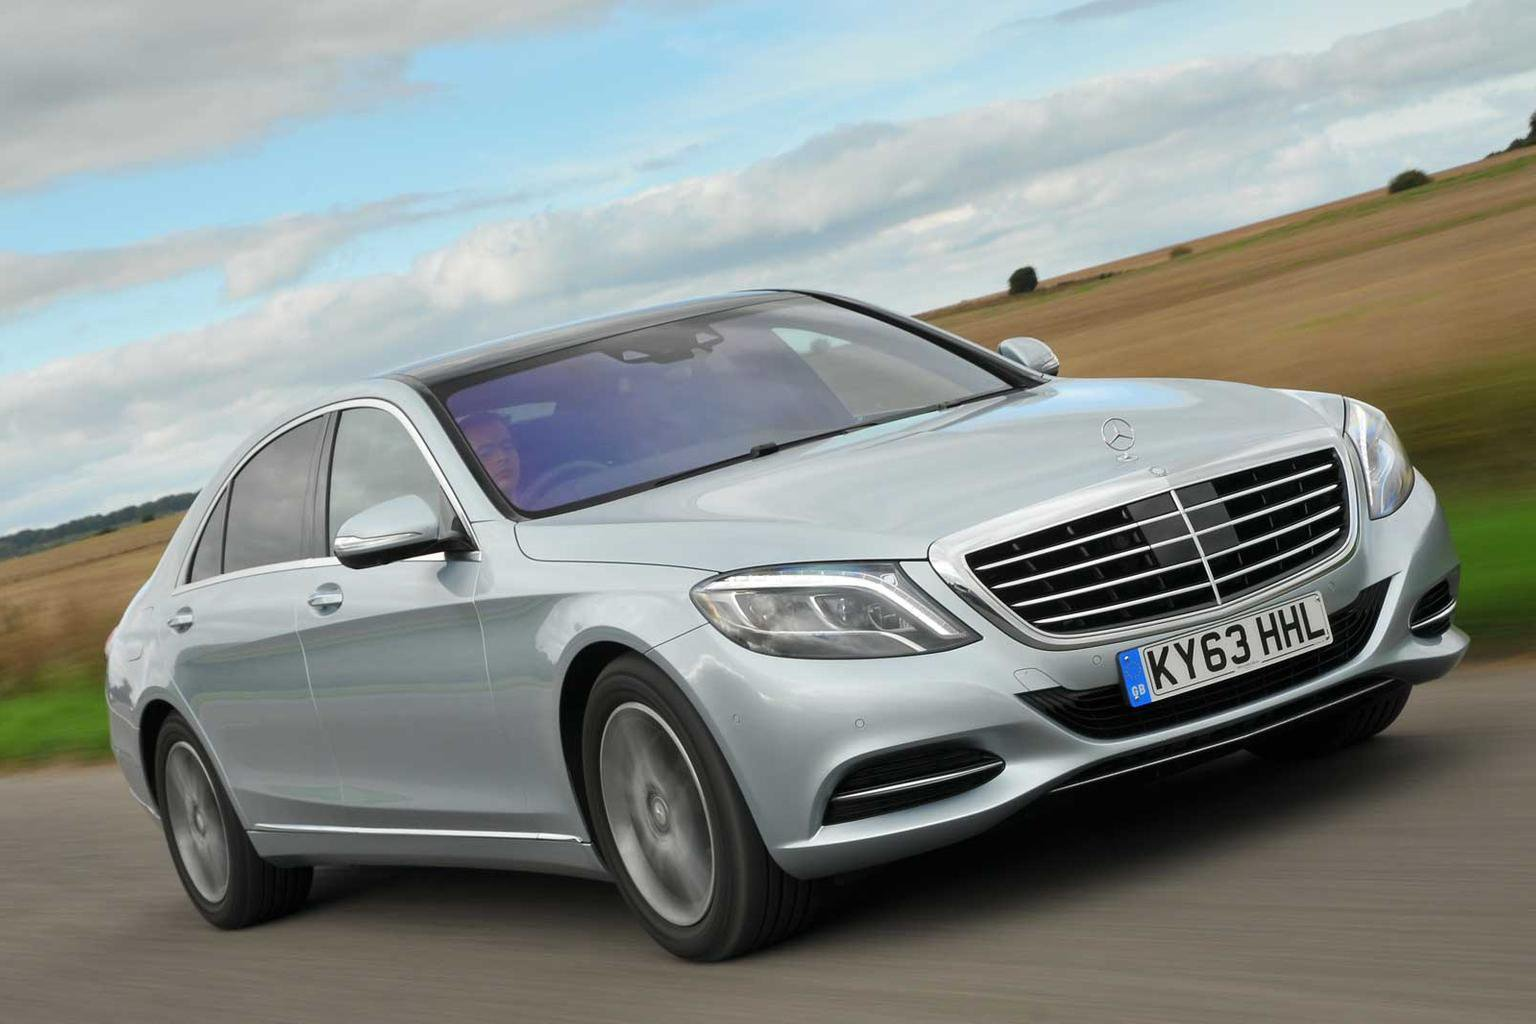 2013 Mercedes S-Class review | What Car?